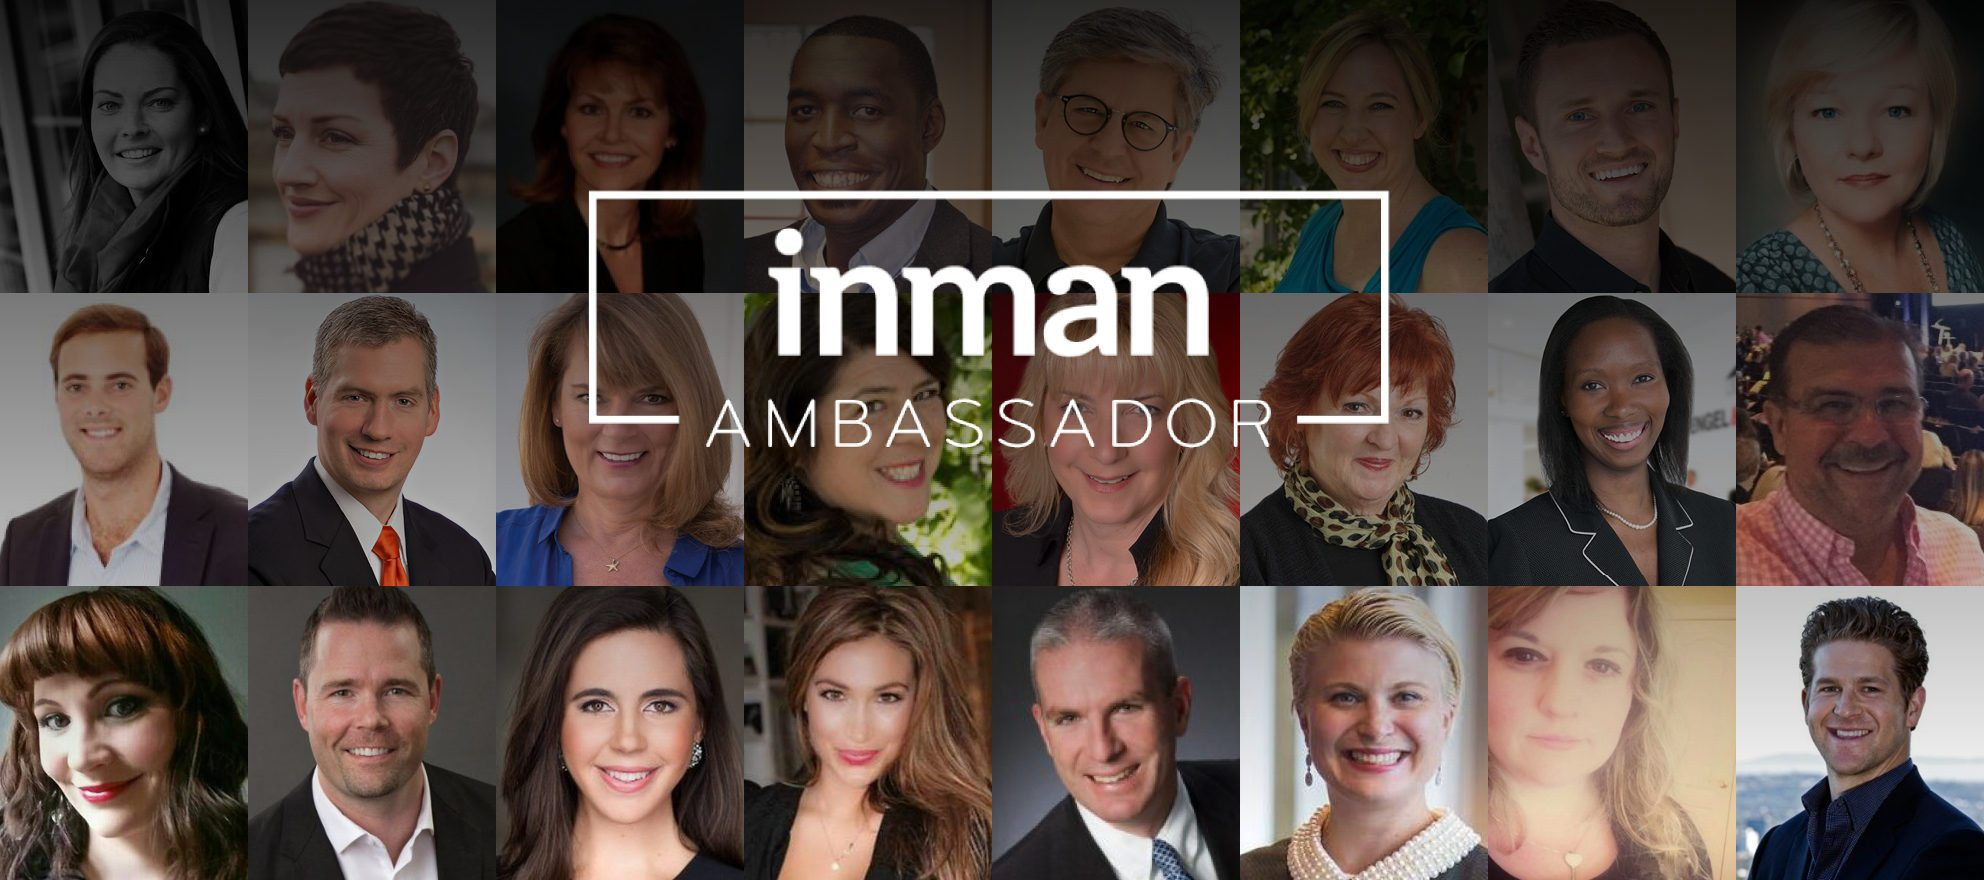 Inman announces 25 Ambassadors for Connect New York